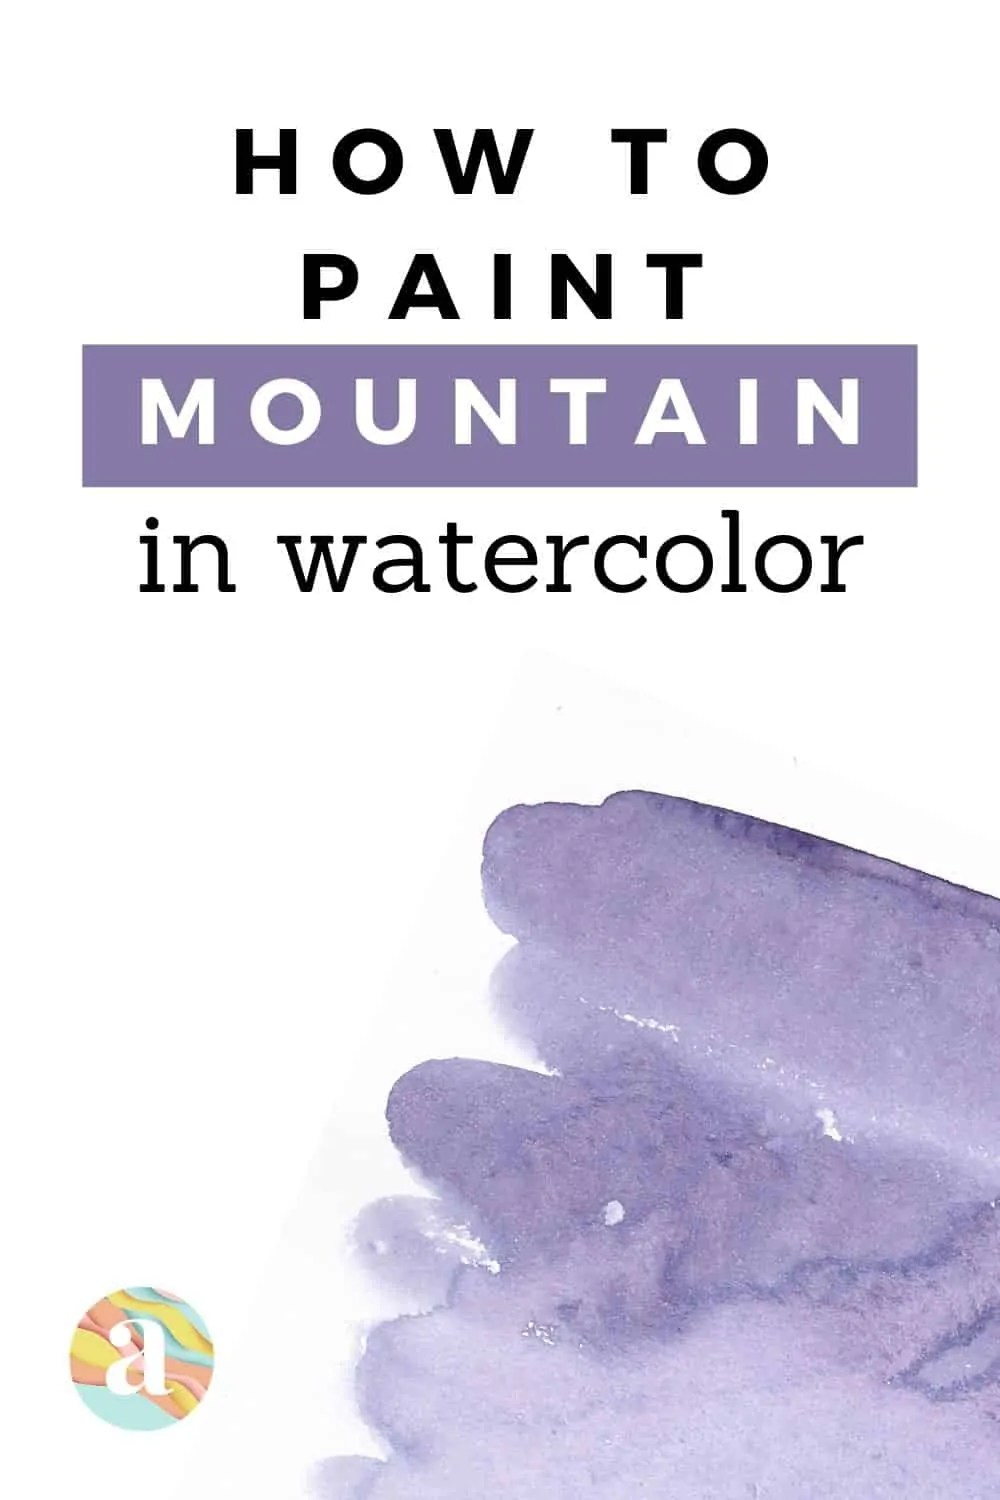 10 Ideas for Your Next Watercolor Painting 41